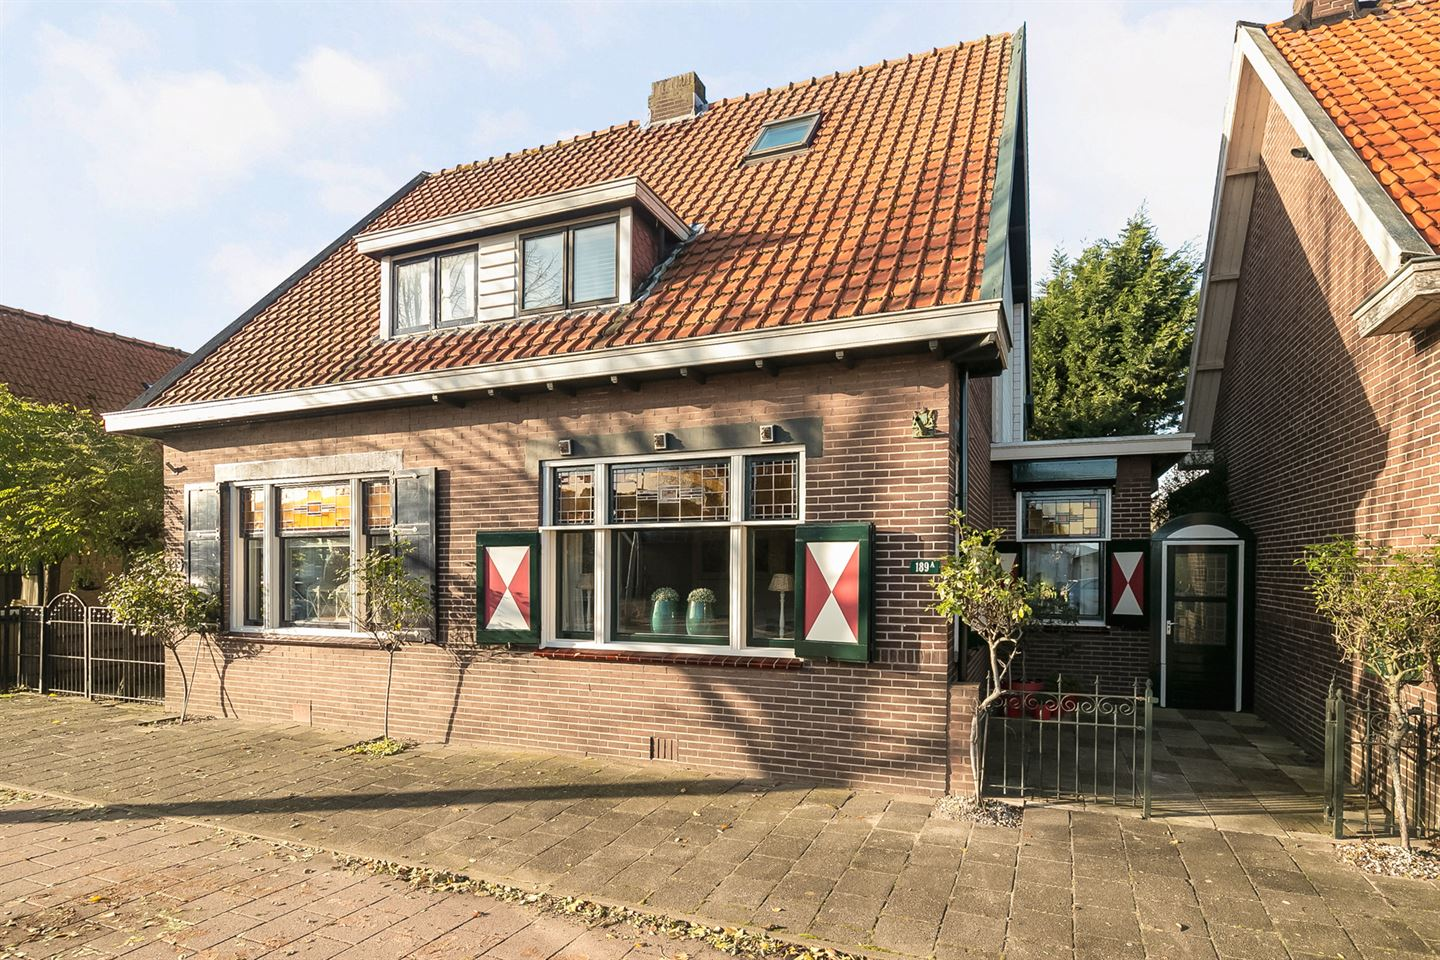 View photo 1 of Burg de Zeeuwstraat 189 A